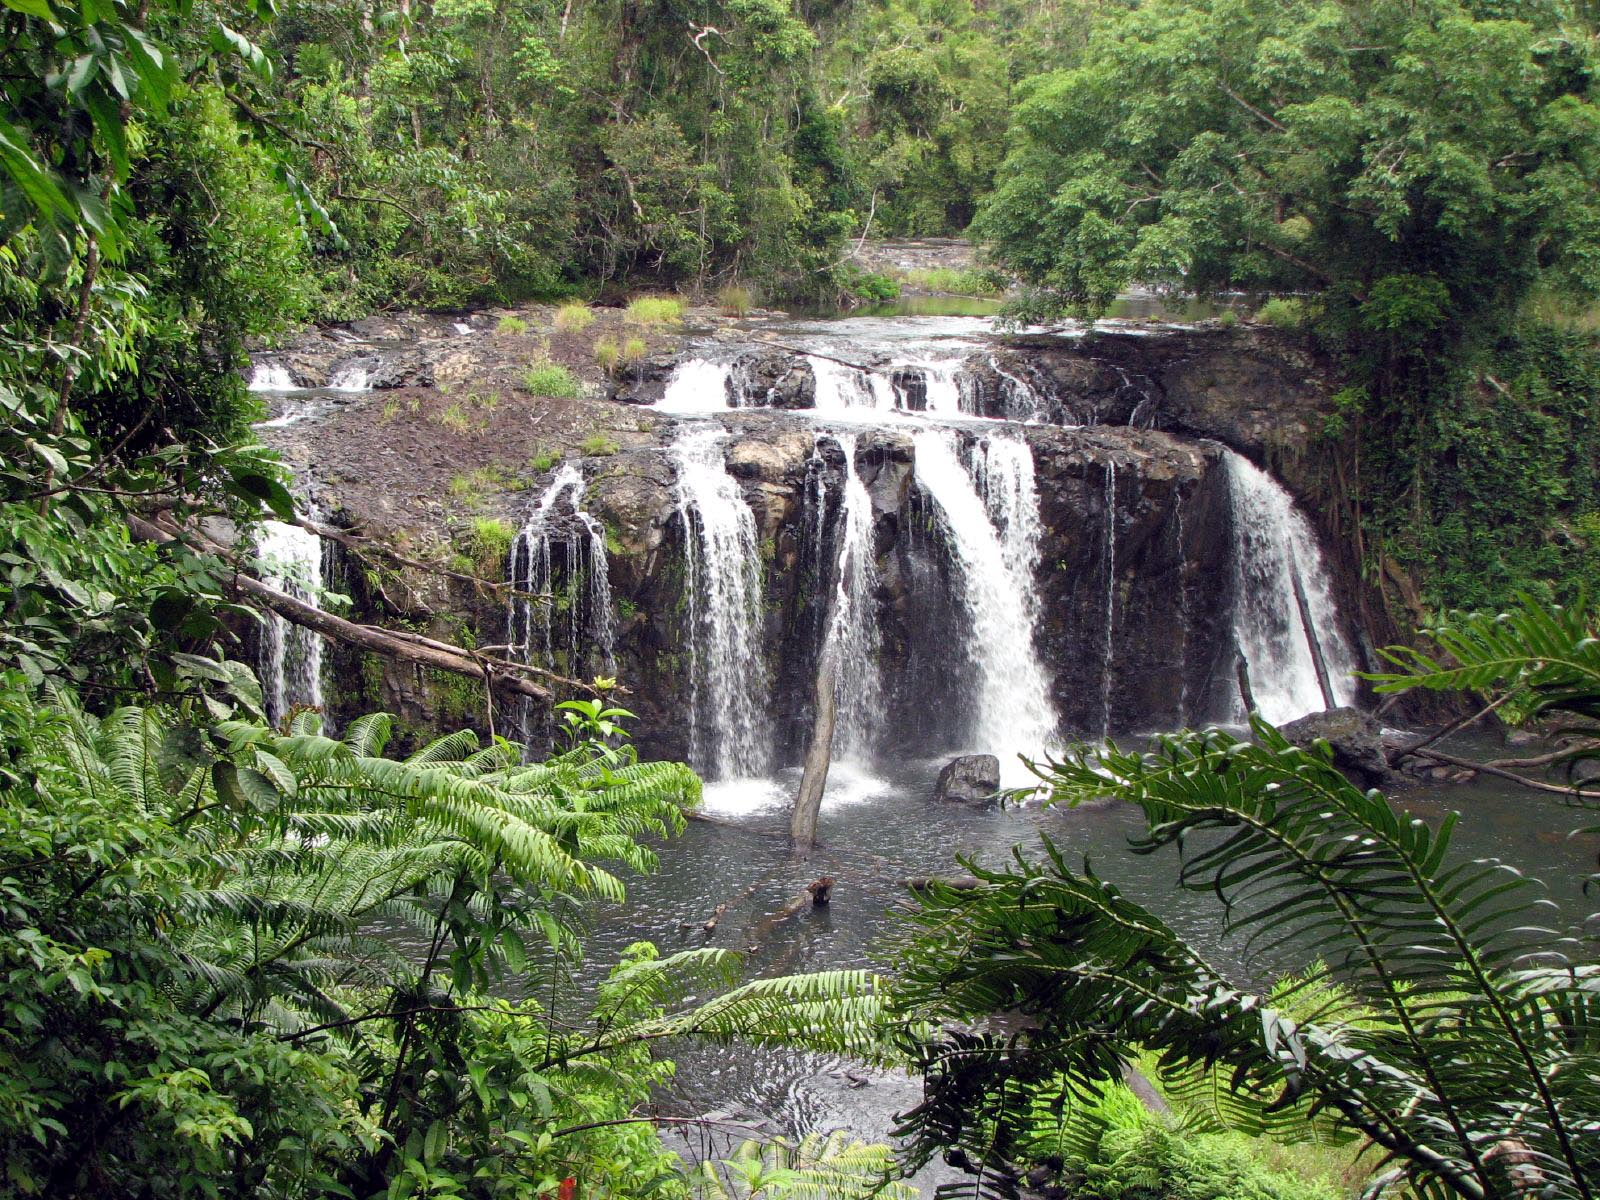 Atherton Tablelands Australia  city photos gallery : Description Falls 1 Atherton Tableland, Queensland, Australia